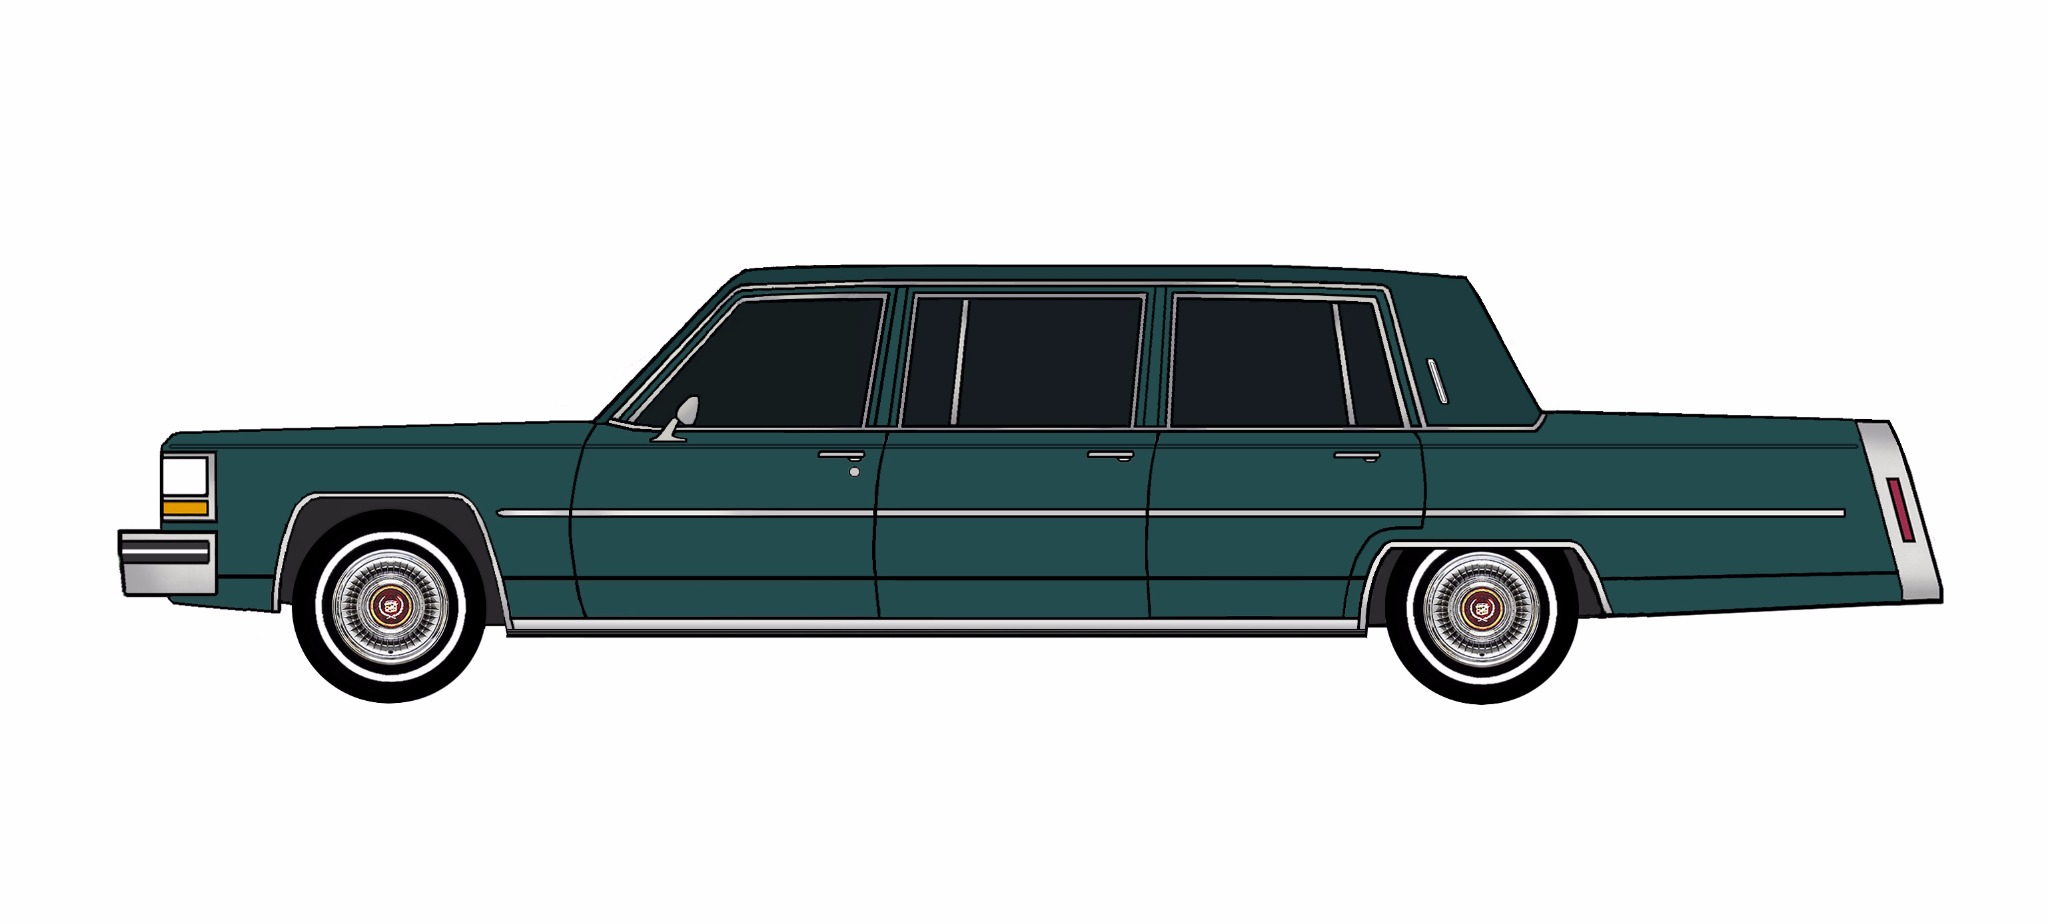 1981 Cadillac Fleetwood Funeral Limo TEAL